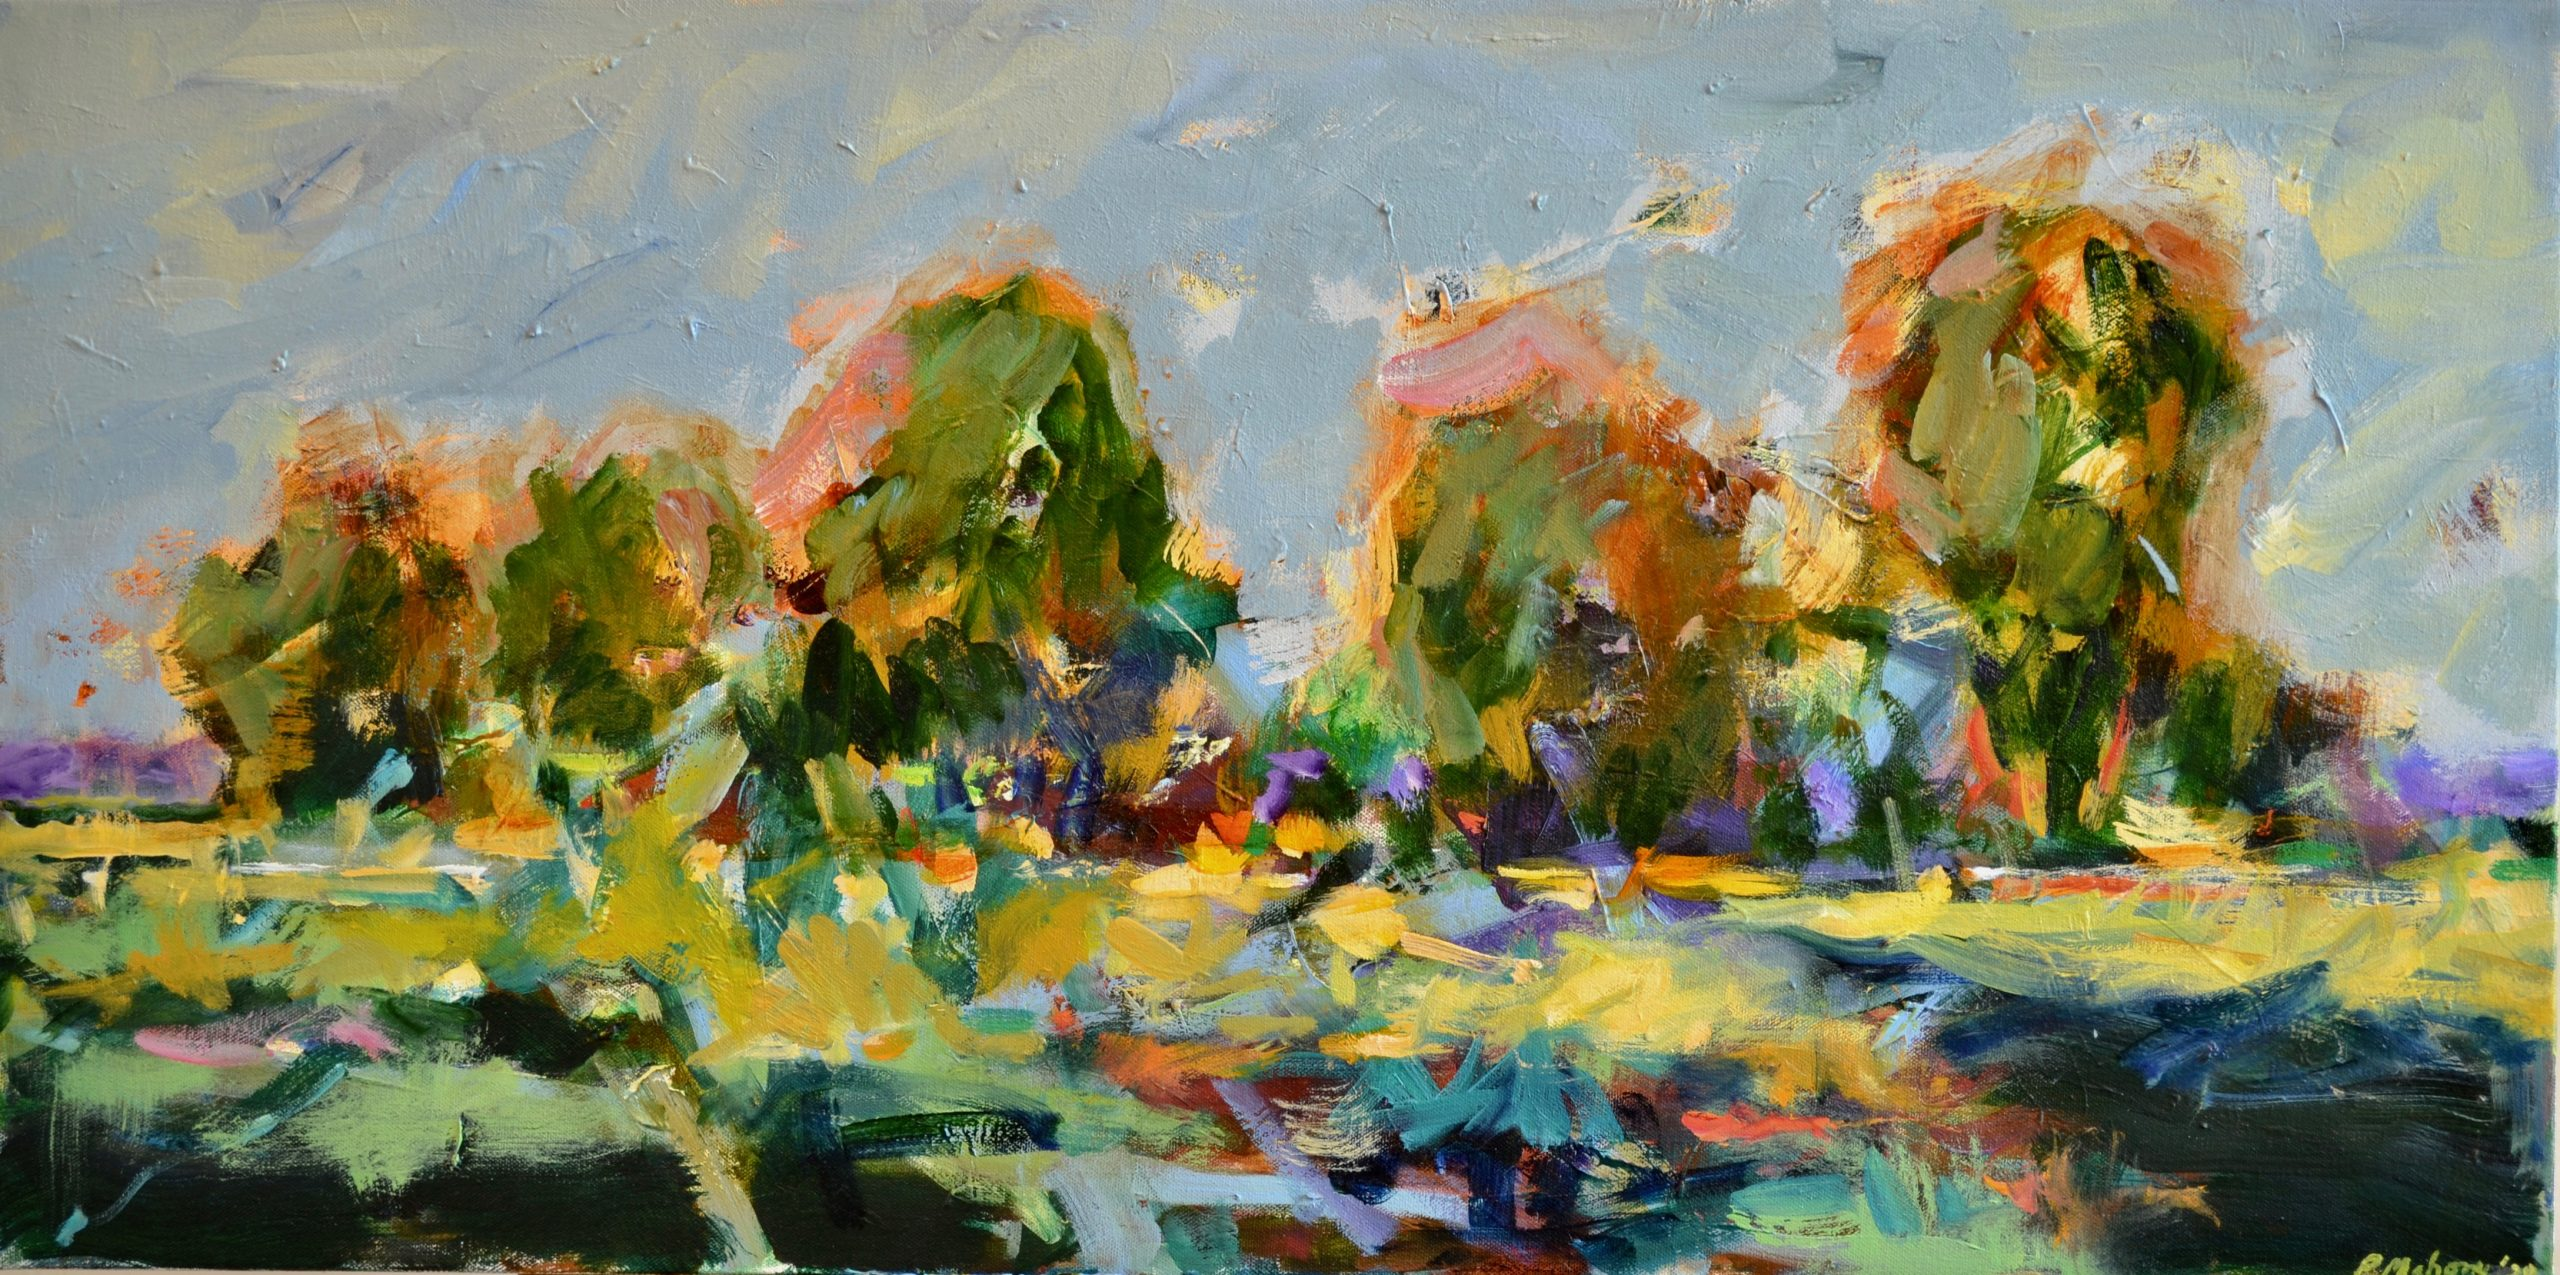 "Pat Mahony - Late Morning Light - 18"" x 36"" - 2020"